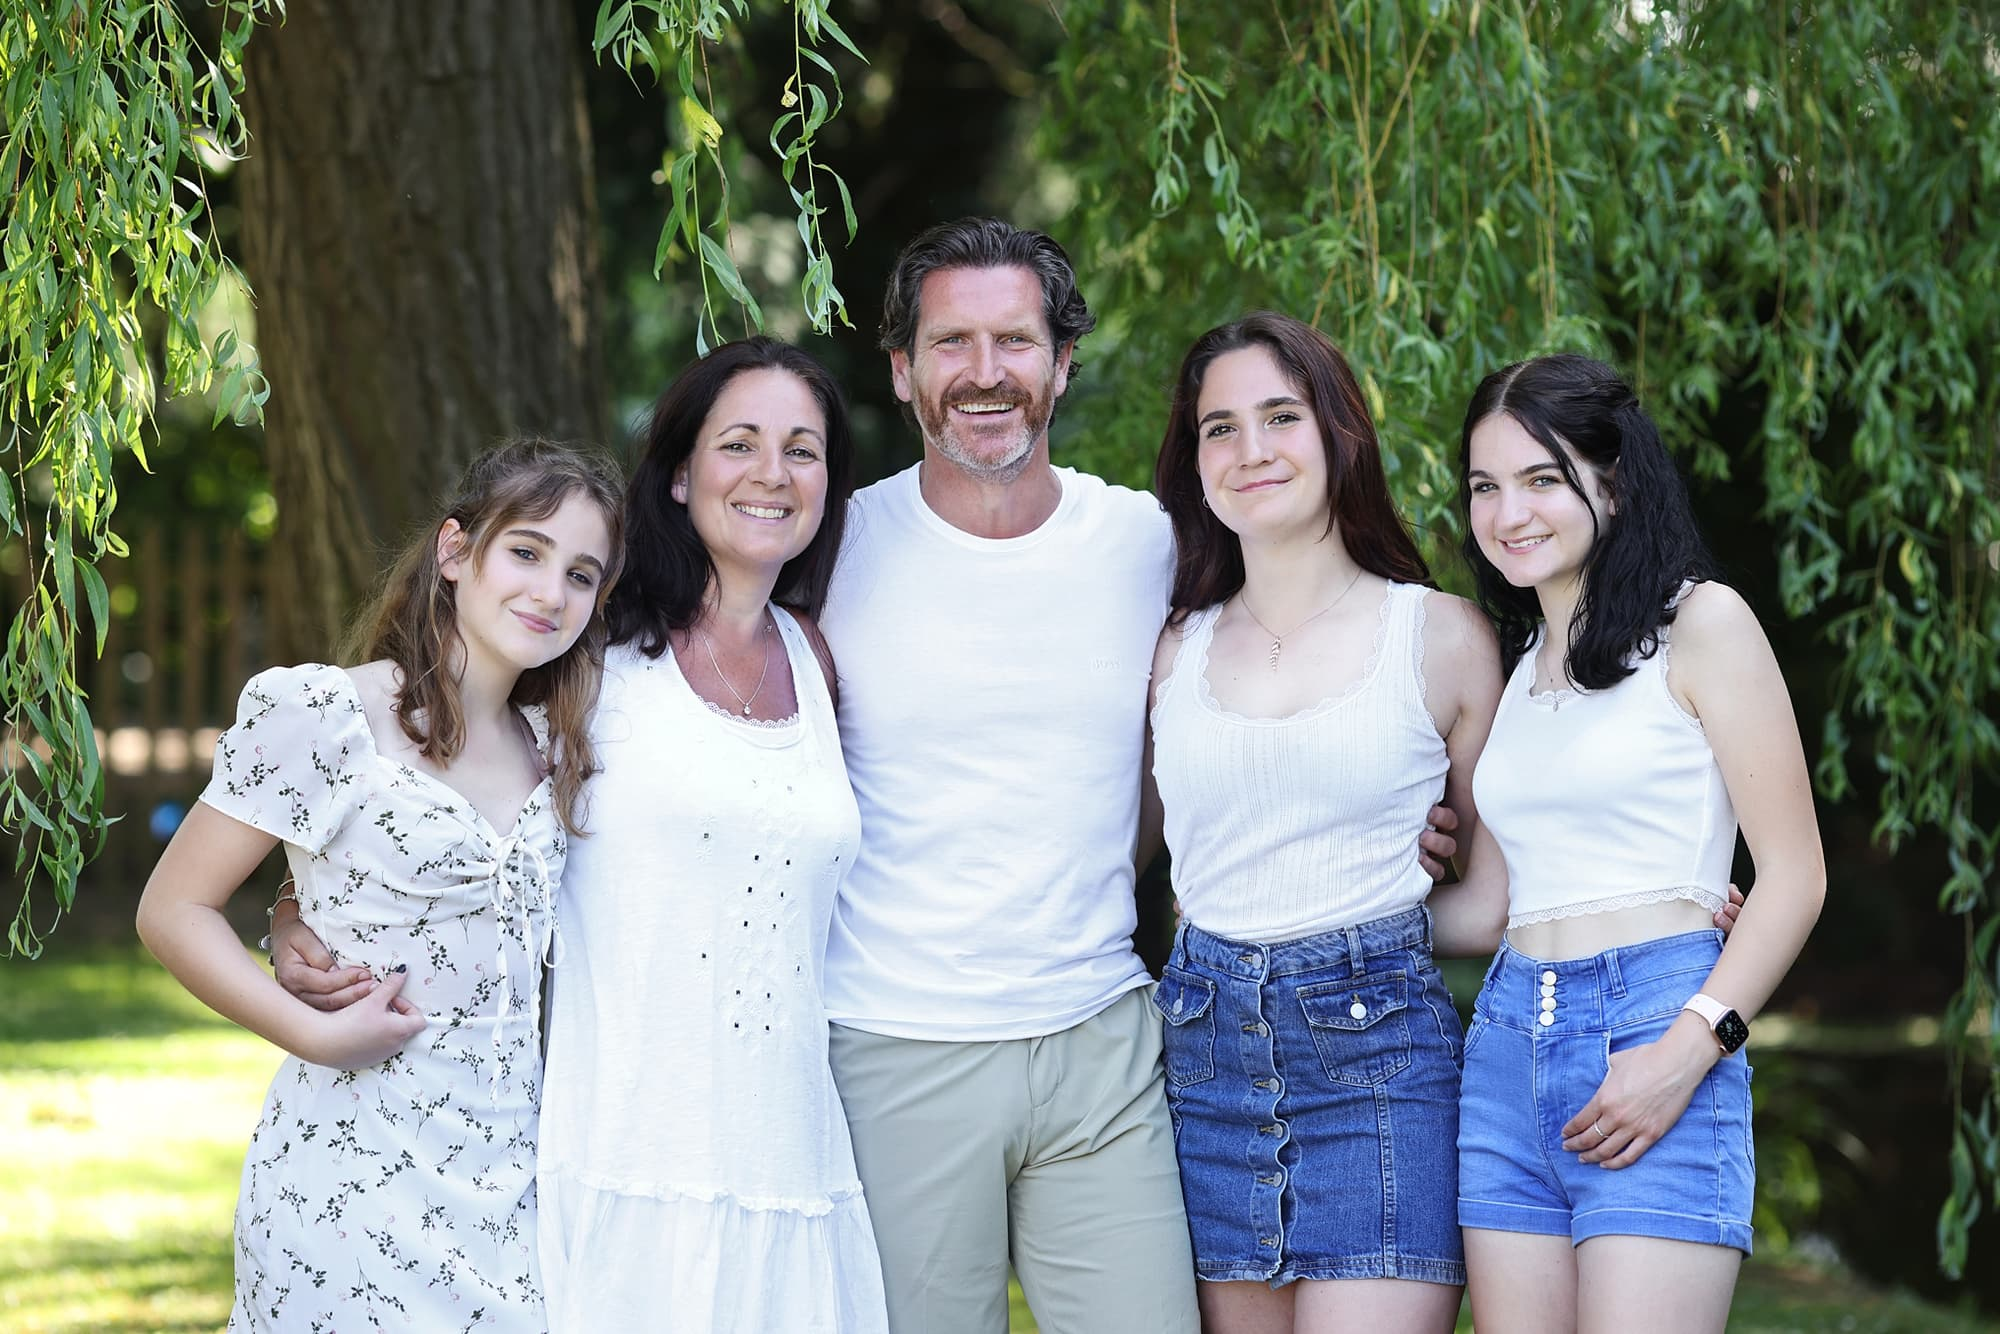 Family of 5 stand and pose for photo next to a green tree with white blossom